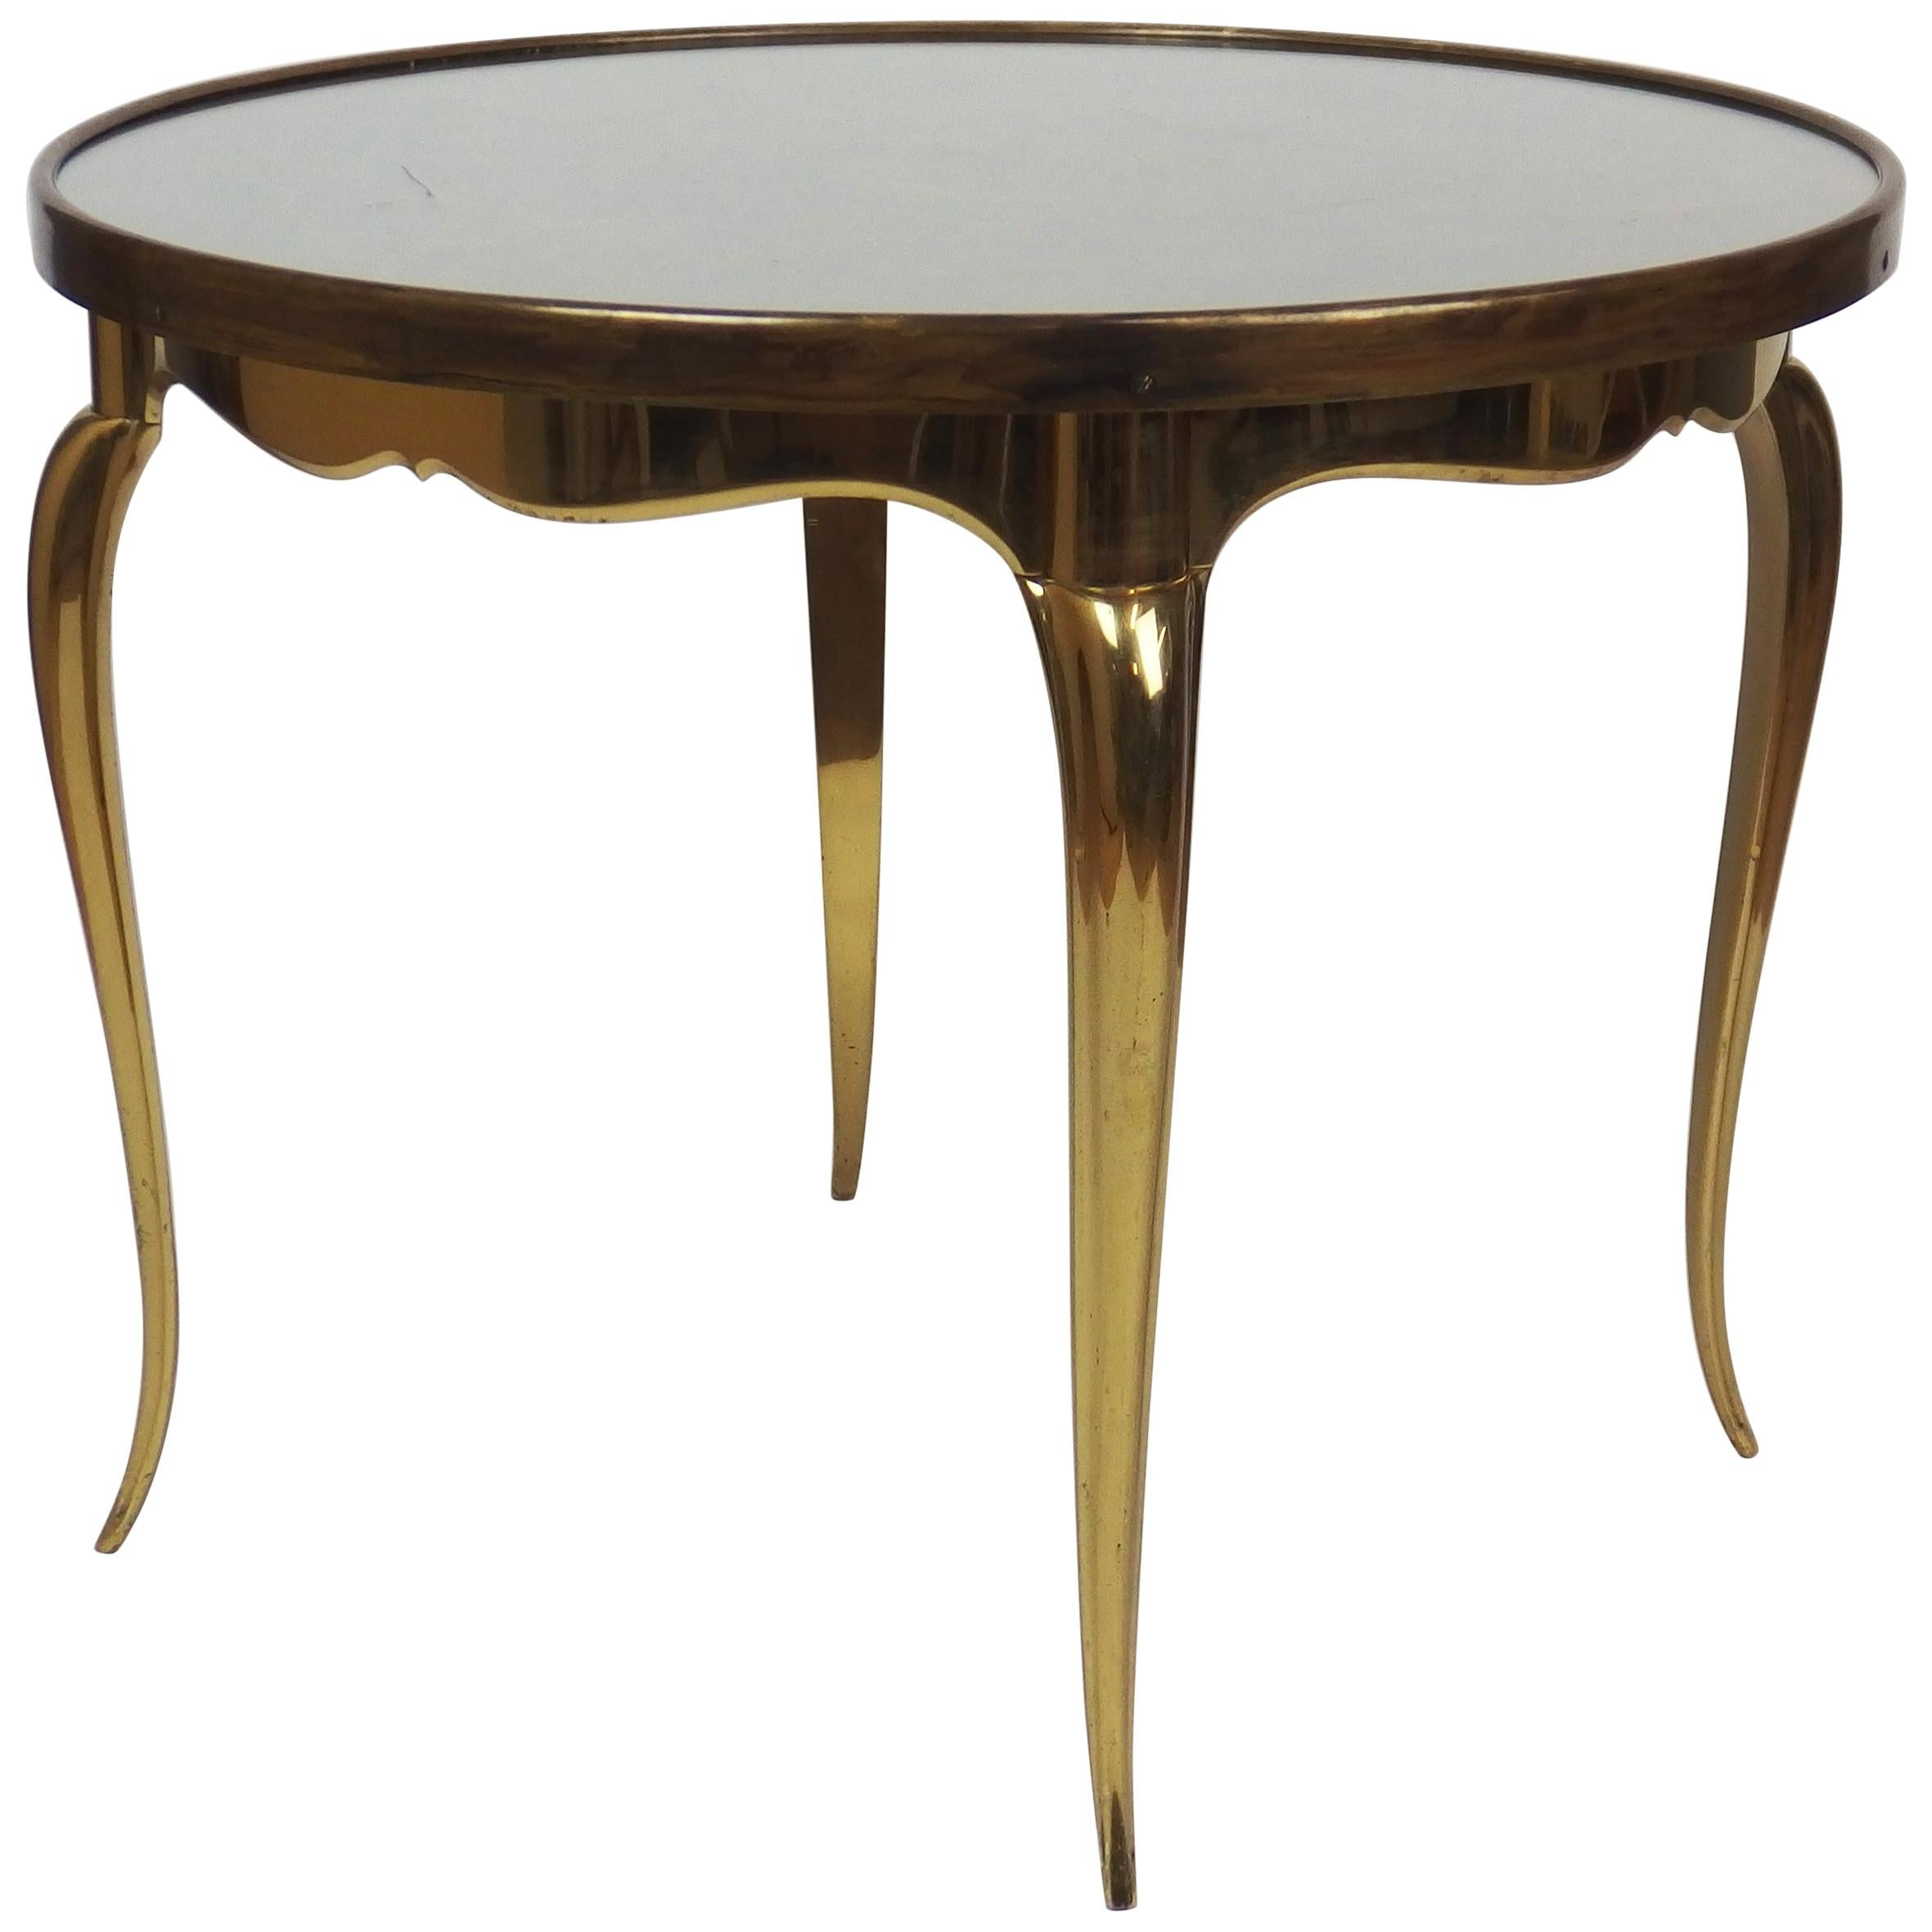 Midcentury Round Bronze Coffee Table For Sale